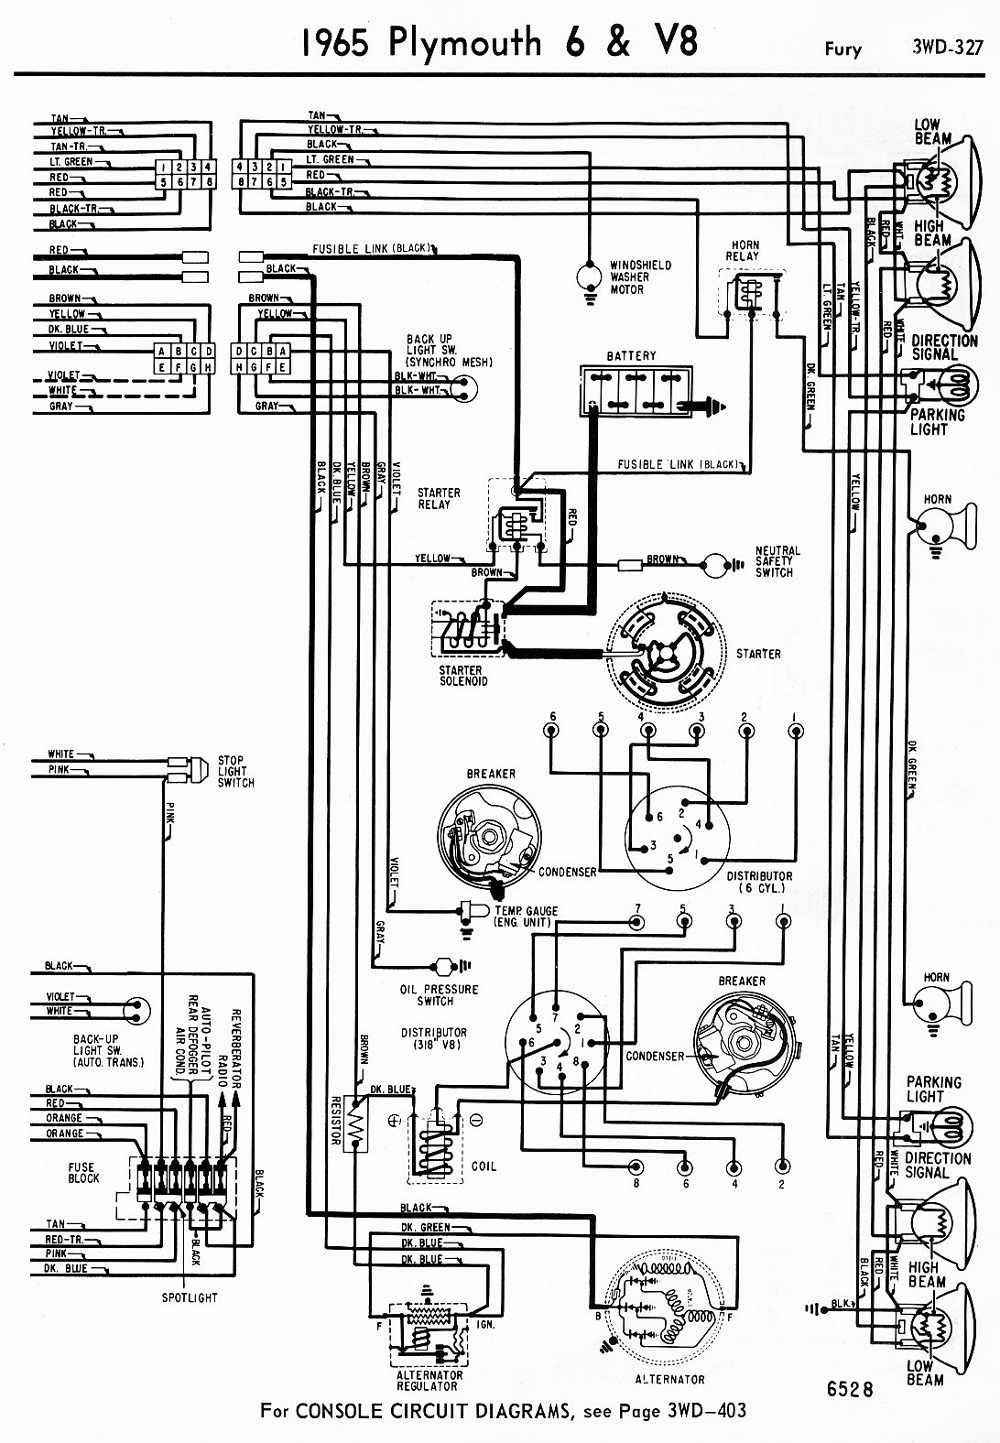 1970 plymouth belvedere wiring diagram color 1941 dodge